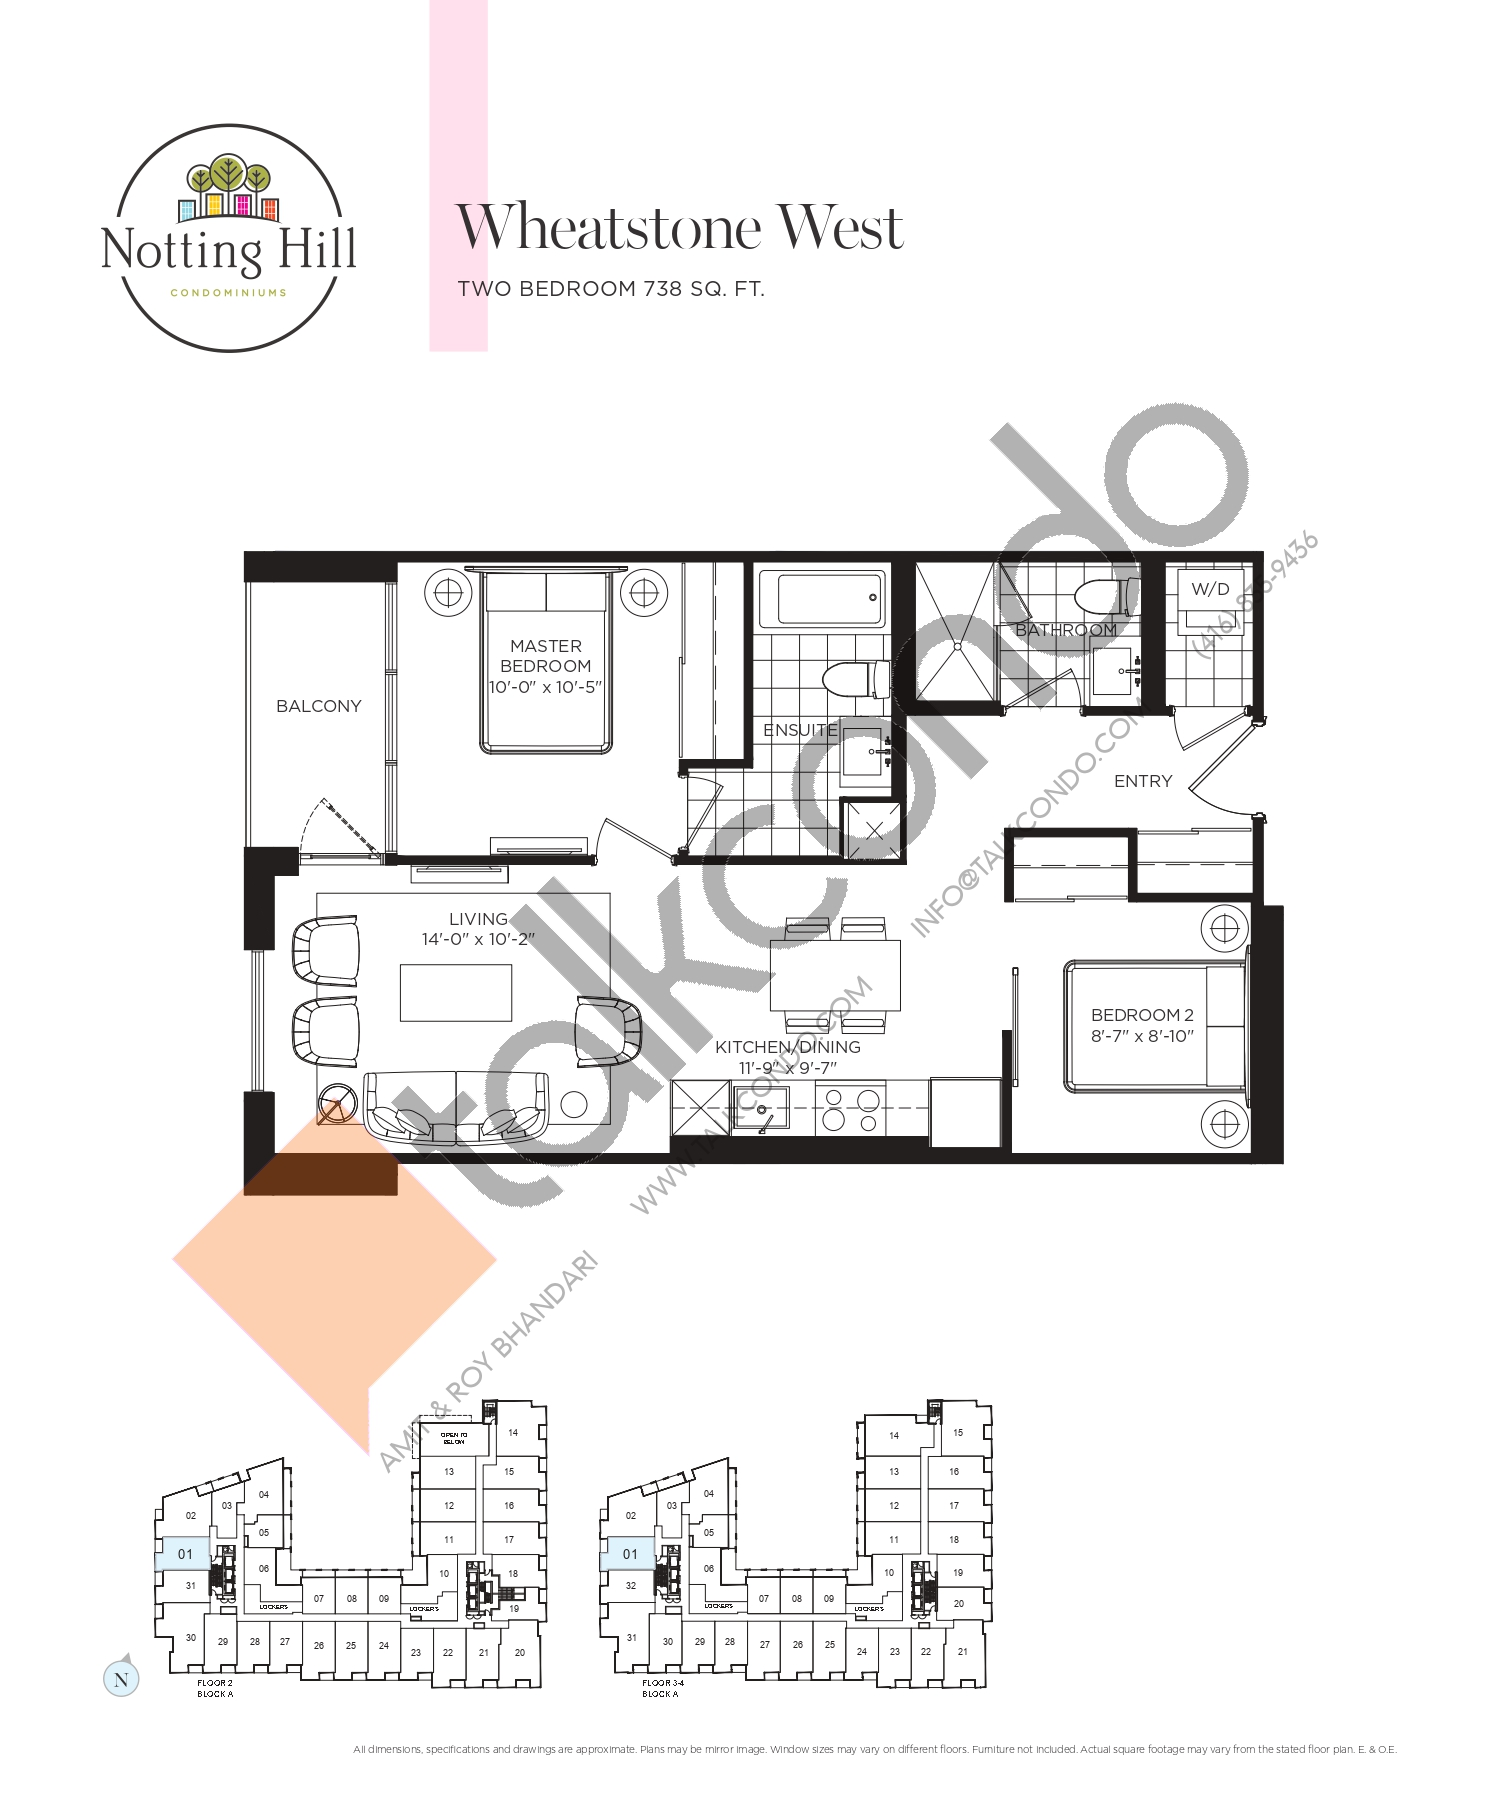 Wheatstone West Floor Plan at Notting Hill Phase 2 Condos - 738 sq.ft